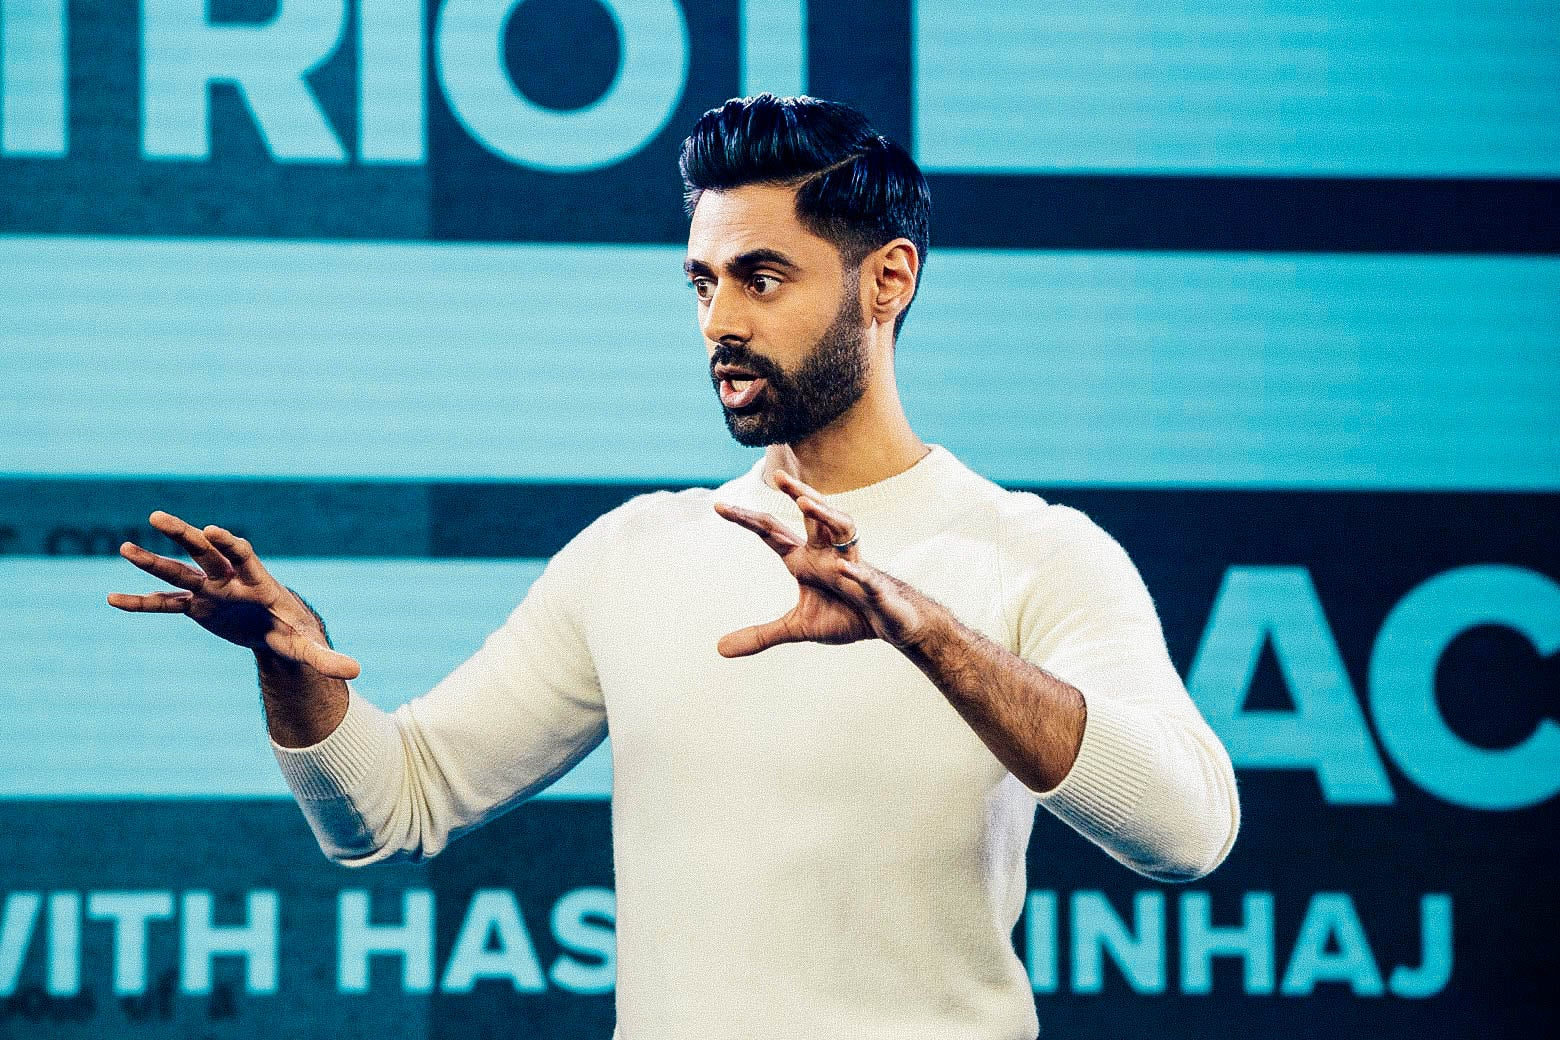 Hasan Minhaj standing with his arms raised on the stage of his show, Patriot Act.